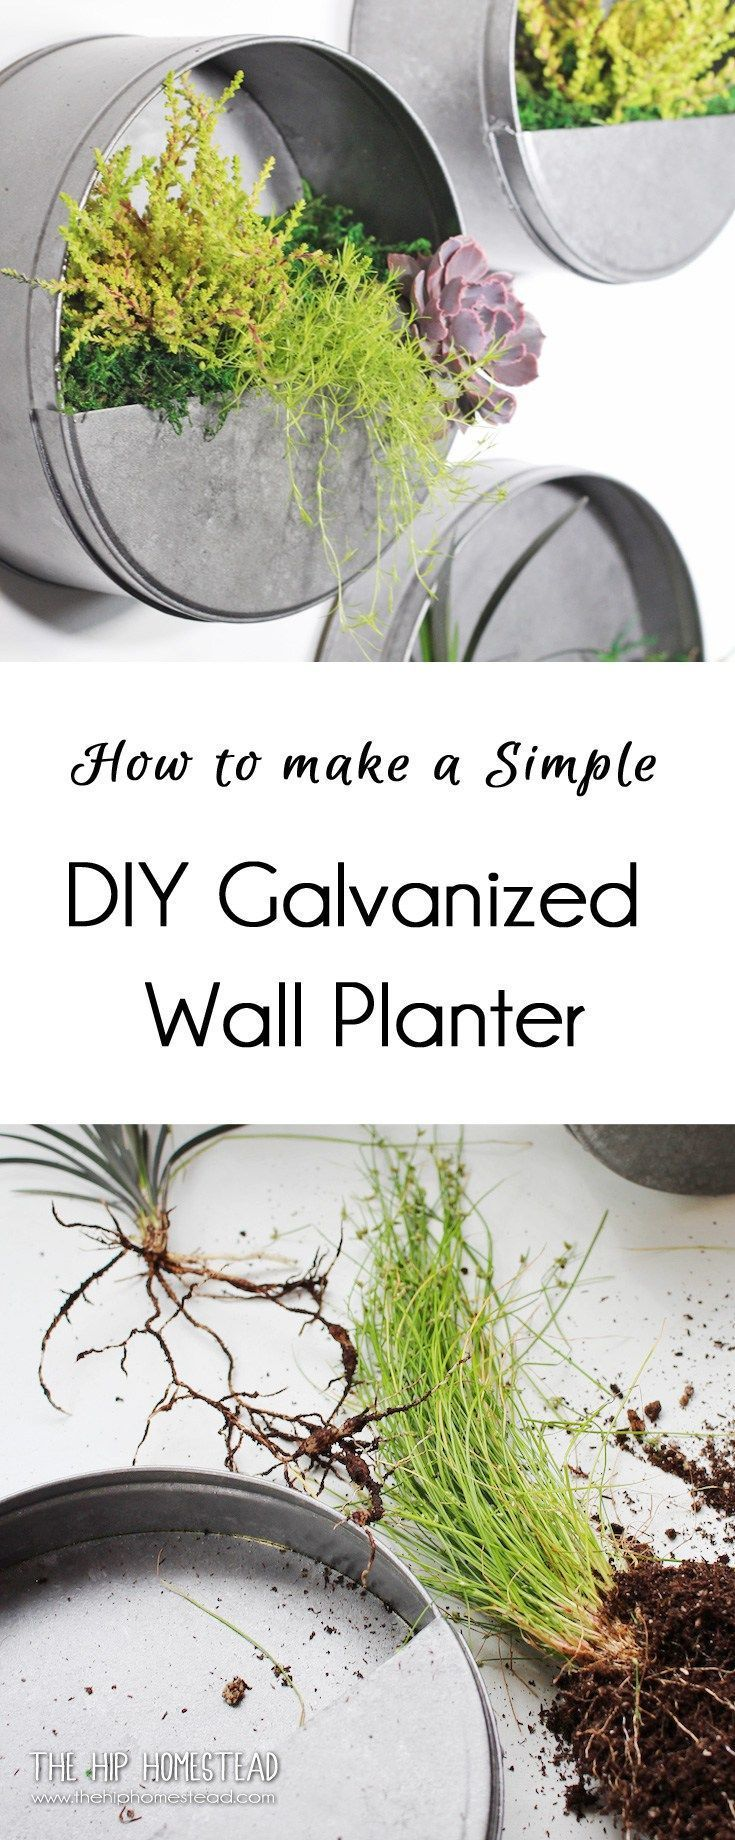 DIY Galvanized Wall Planter How to Make Simple DIY Galvanized Wall Planters - The Hip HomesteadHow to Make Simple DIY Galvanized Wall Planters - The Hip Homestead